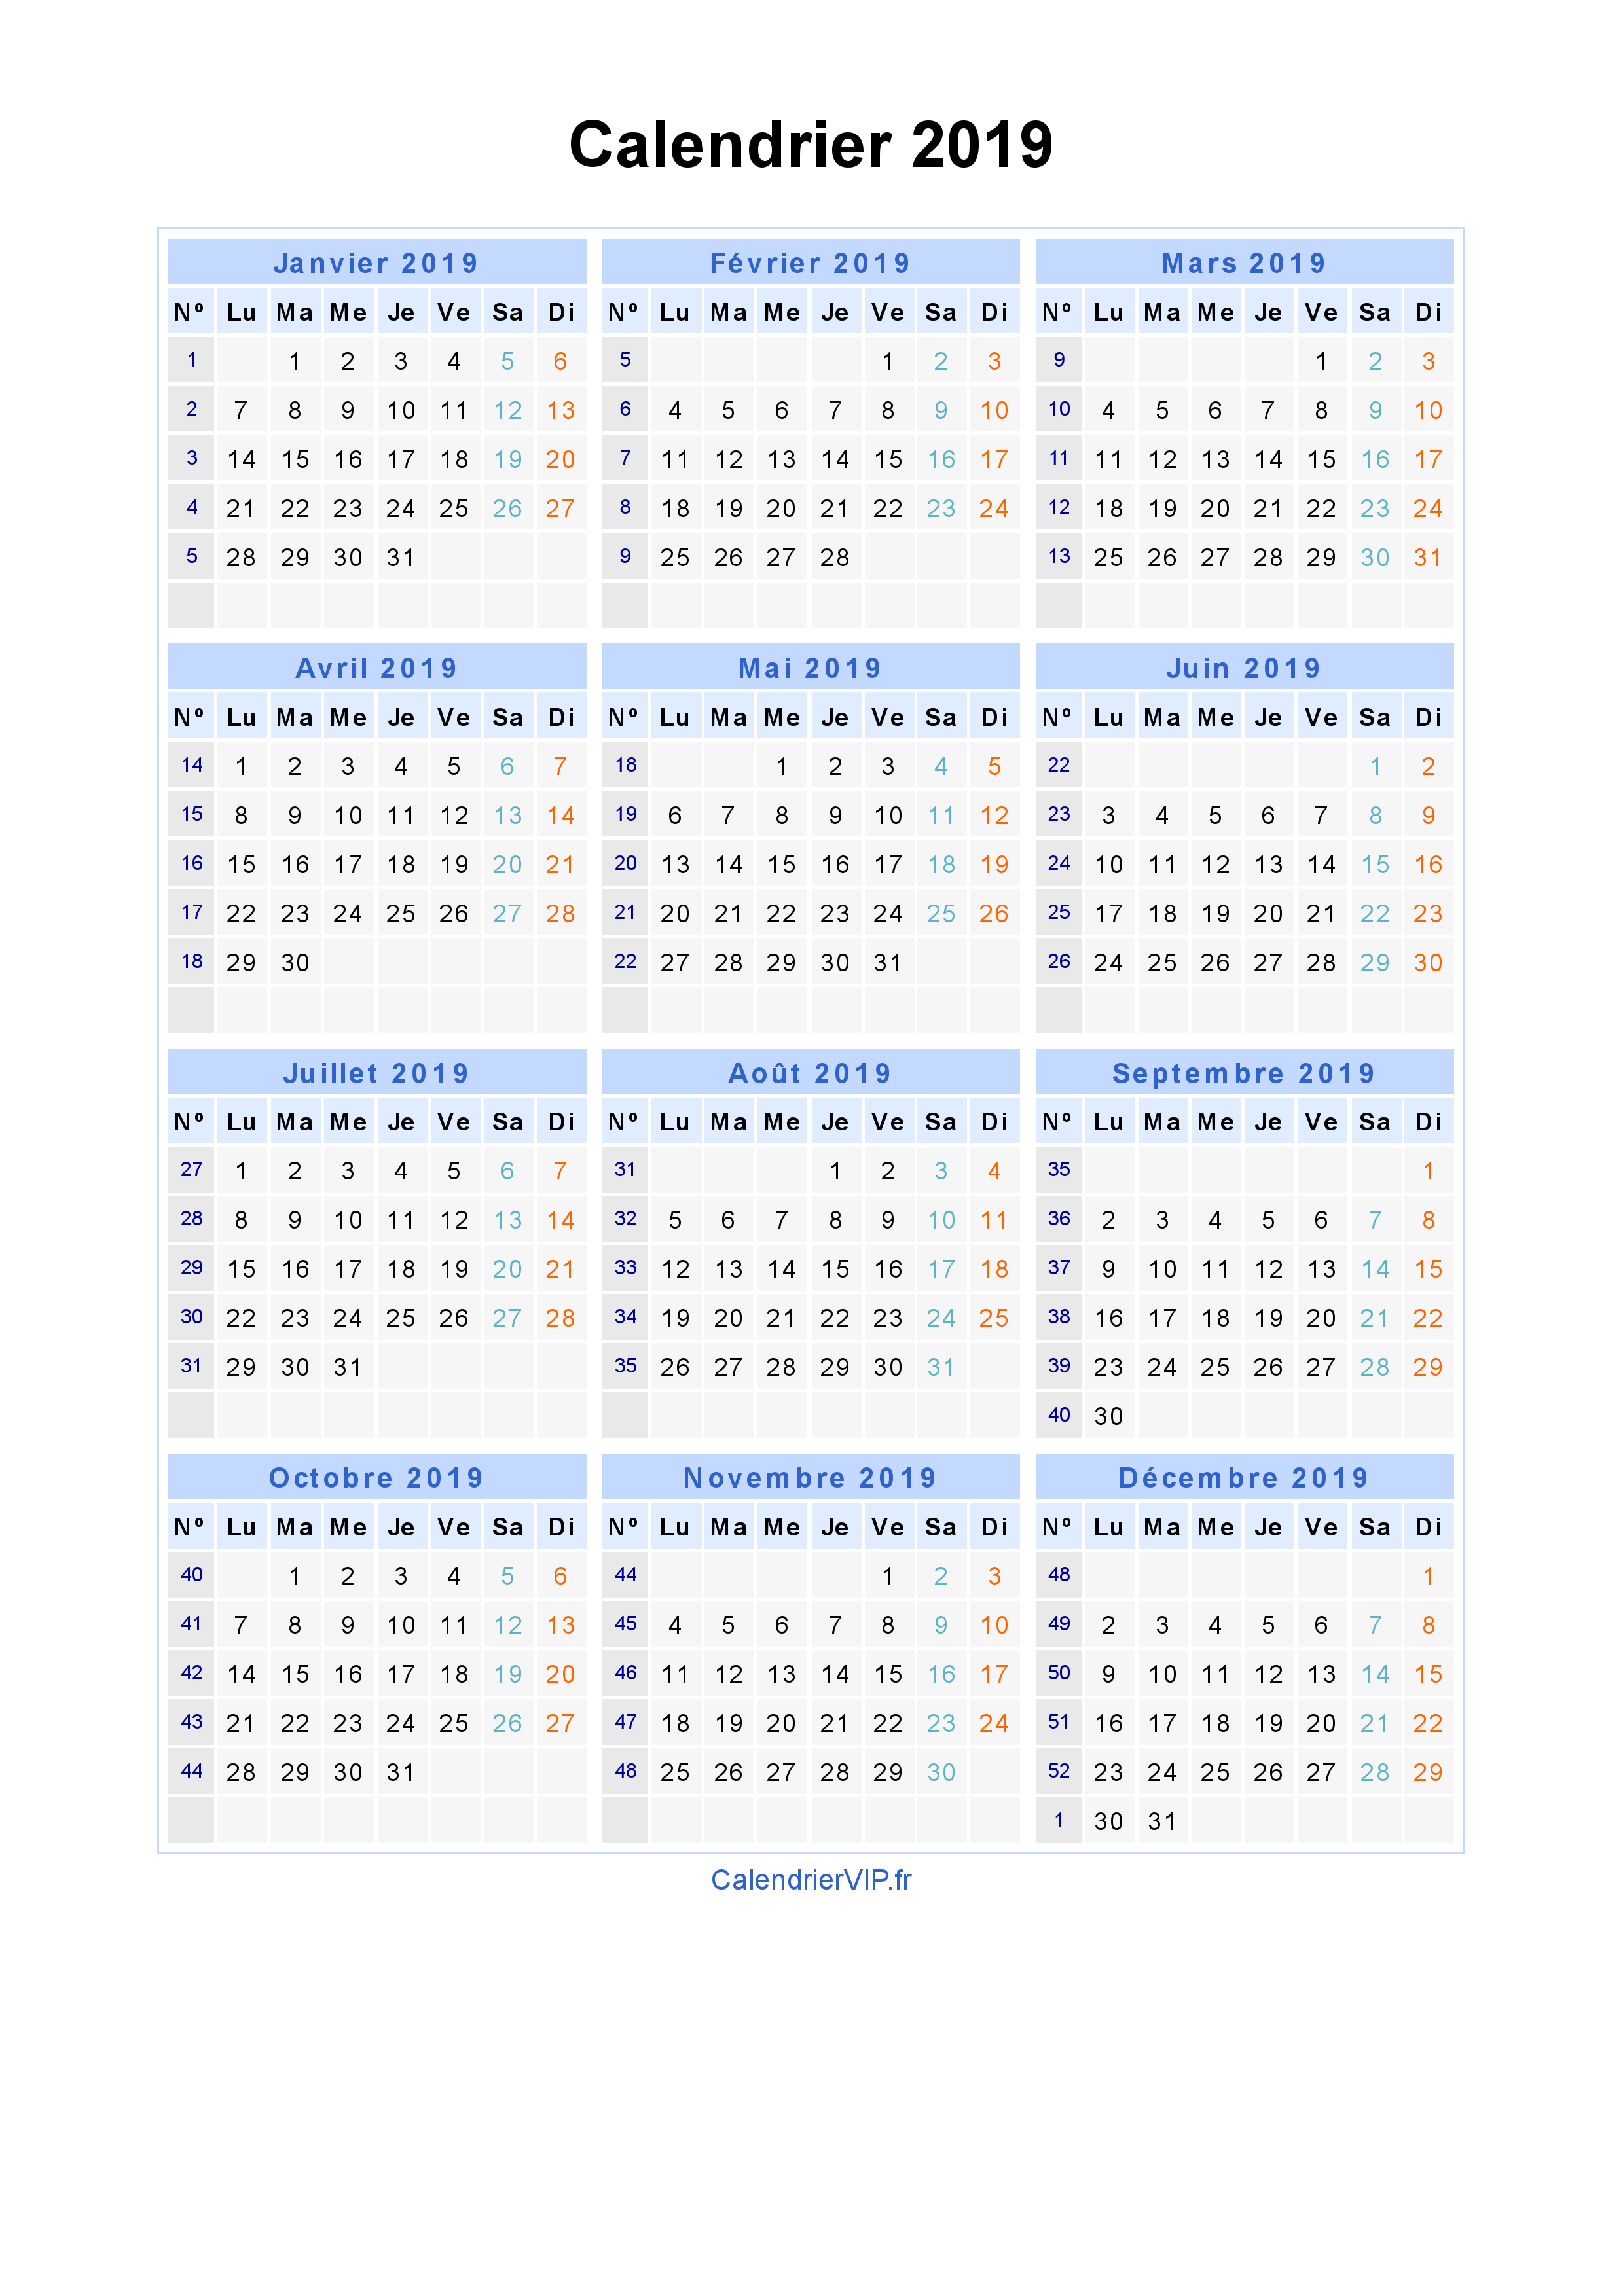 Calendrier Annuel 2020 A Imprimer Very Utile.Calendrier 2019 Gratuit A Imprimer 2019 Calendrier 2018